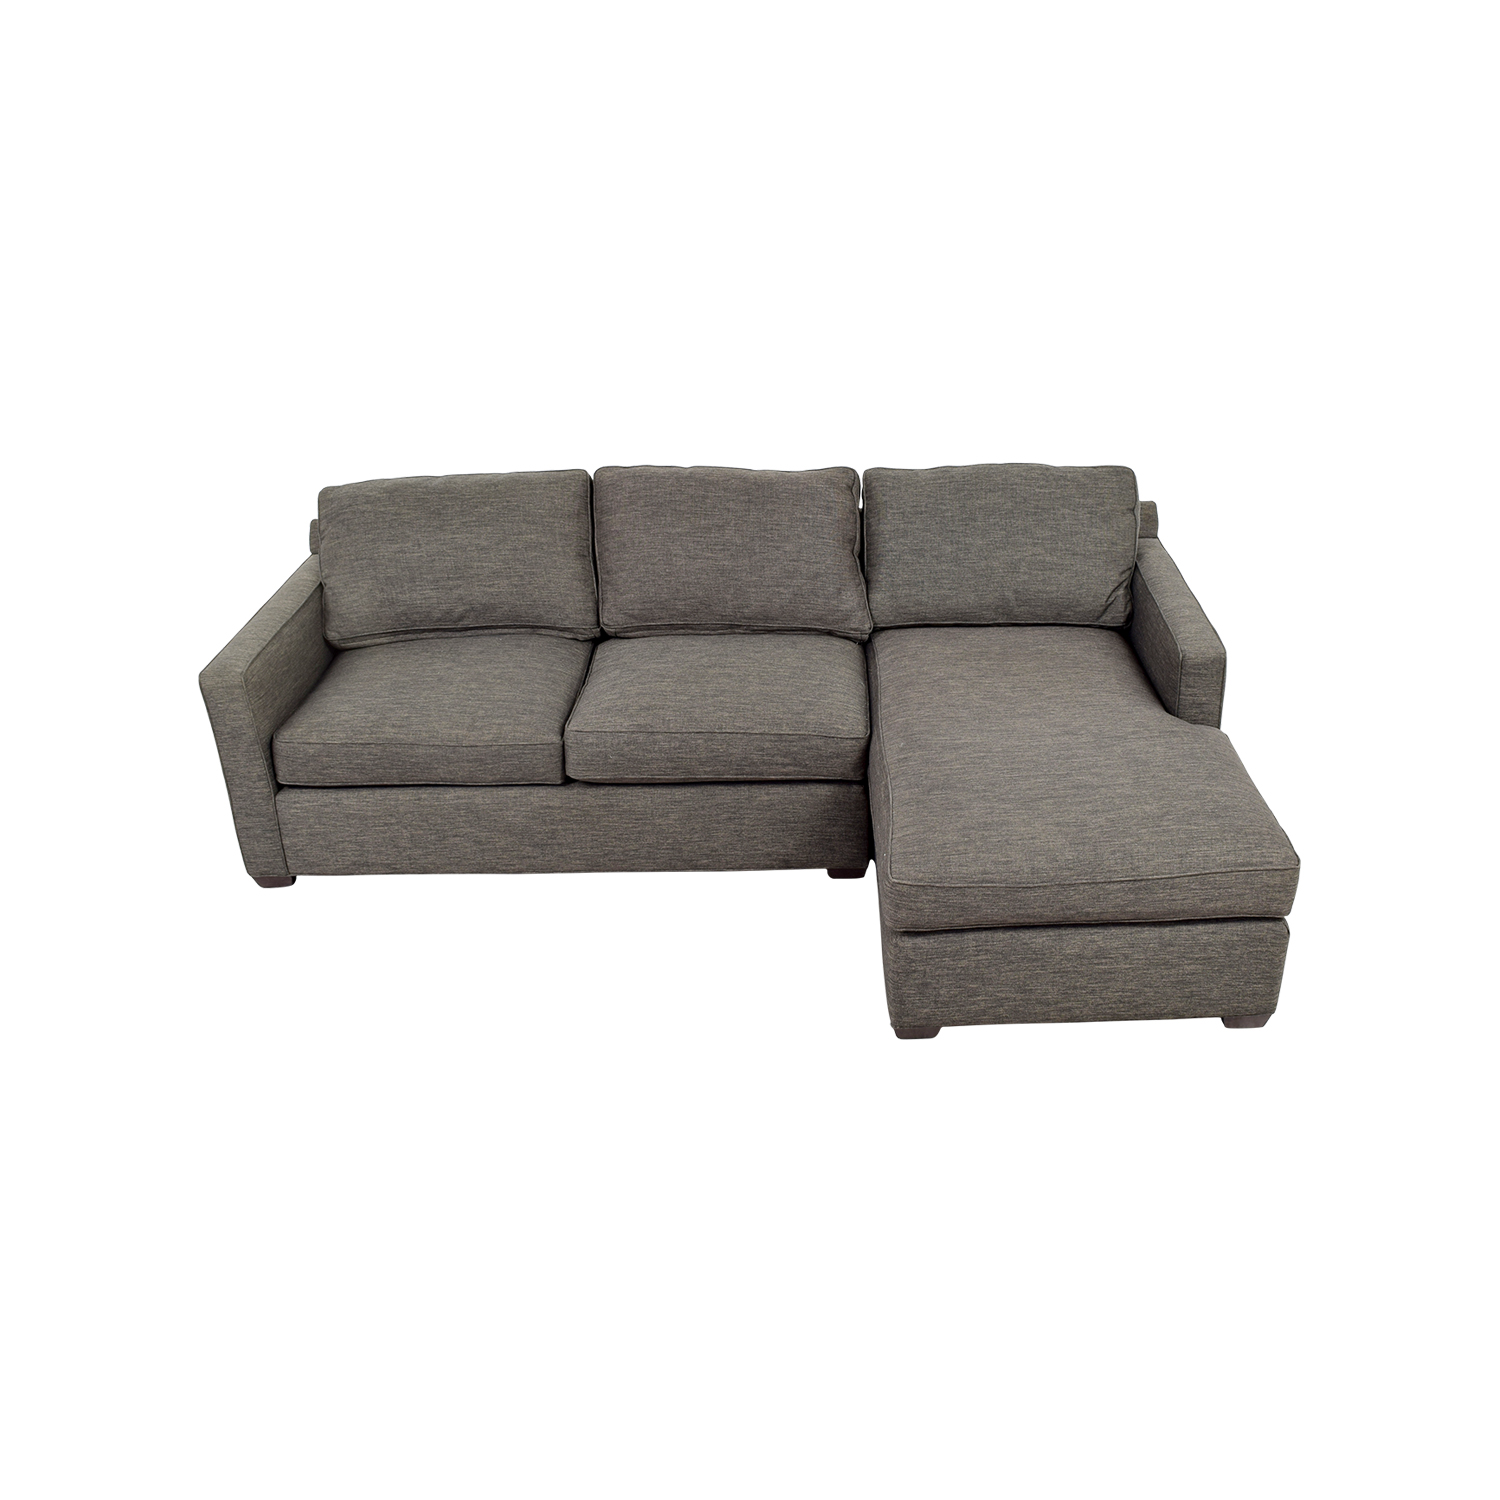 Crate and Barrel Crate & Barrel Davis Grey Chaise Sectional coupon